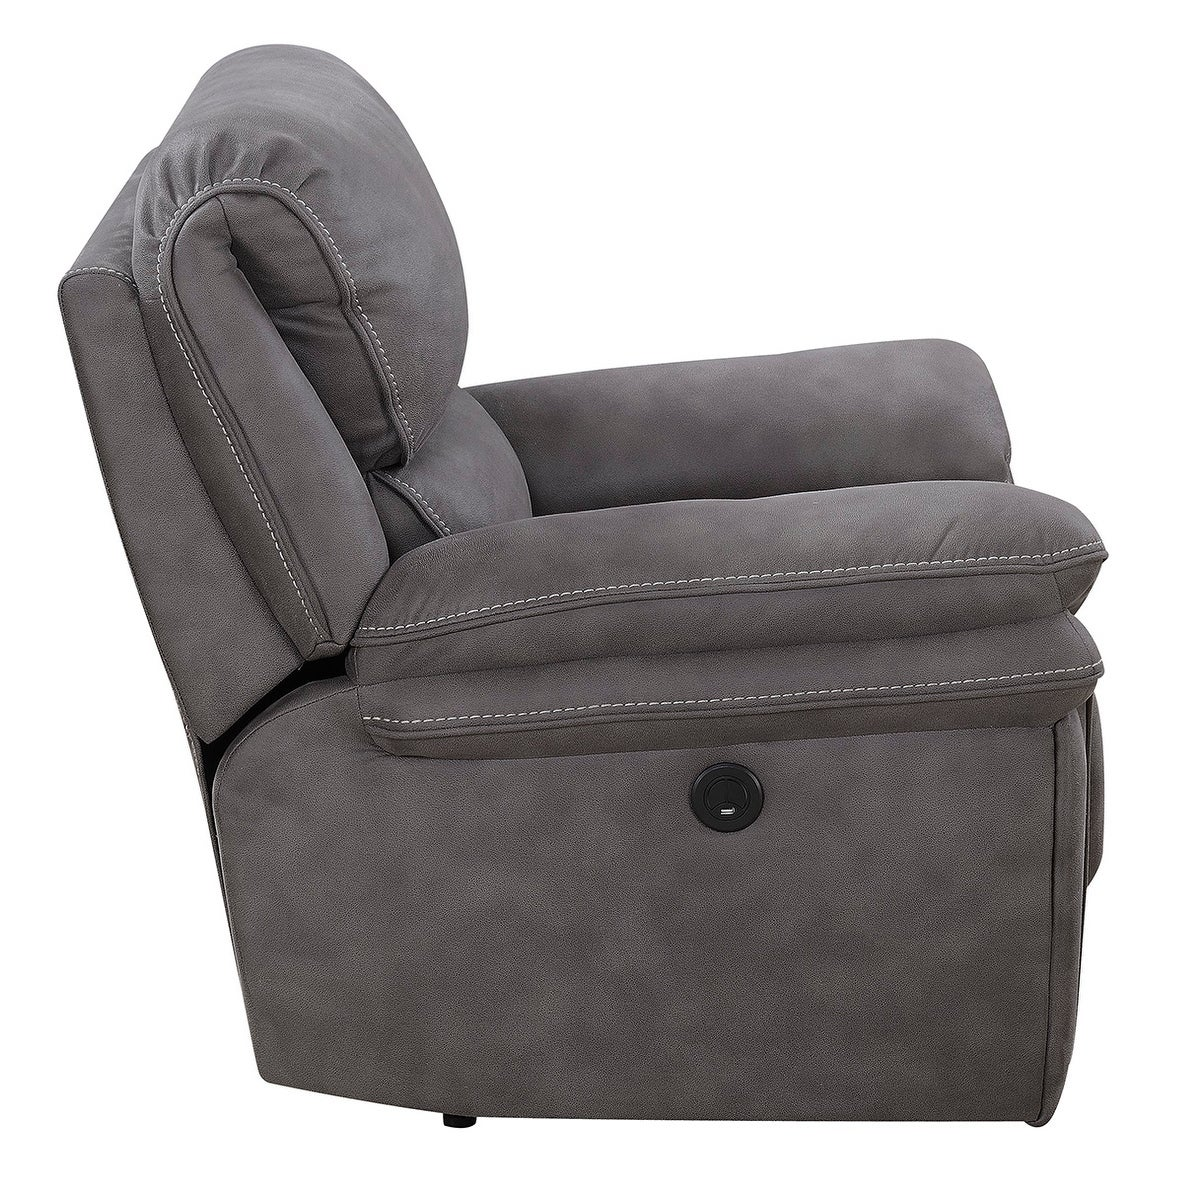 Astounding Henry Power Recliner With Memory Foam Seat Topper And Usb Charging Port Ncnpc Chair Design For Home Ncnpcorg